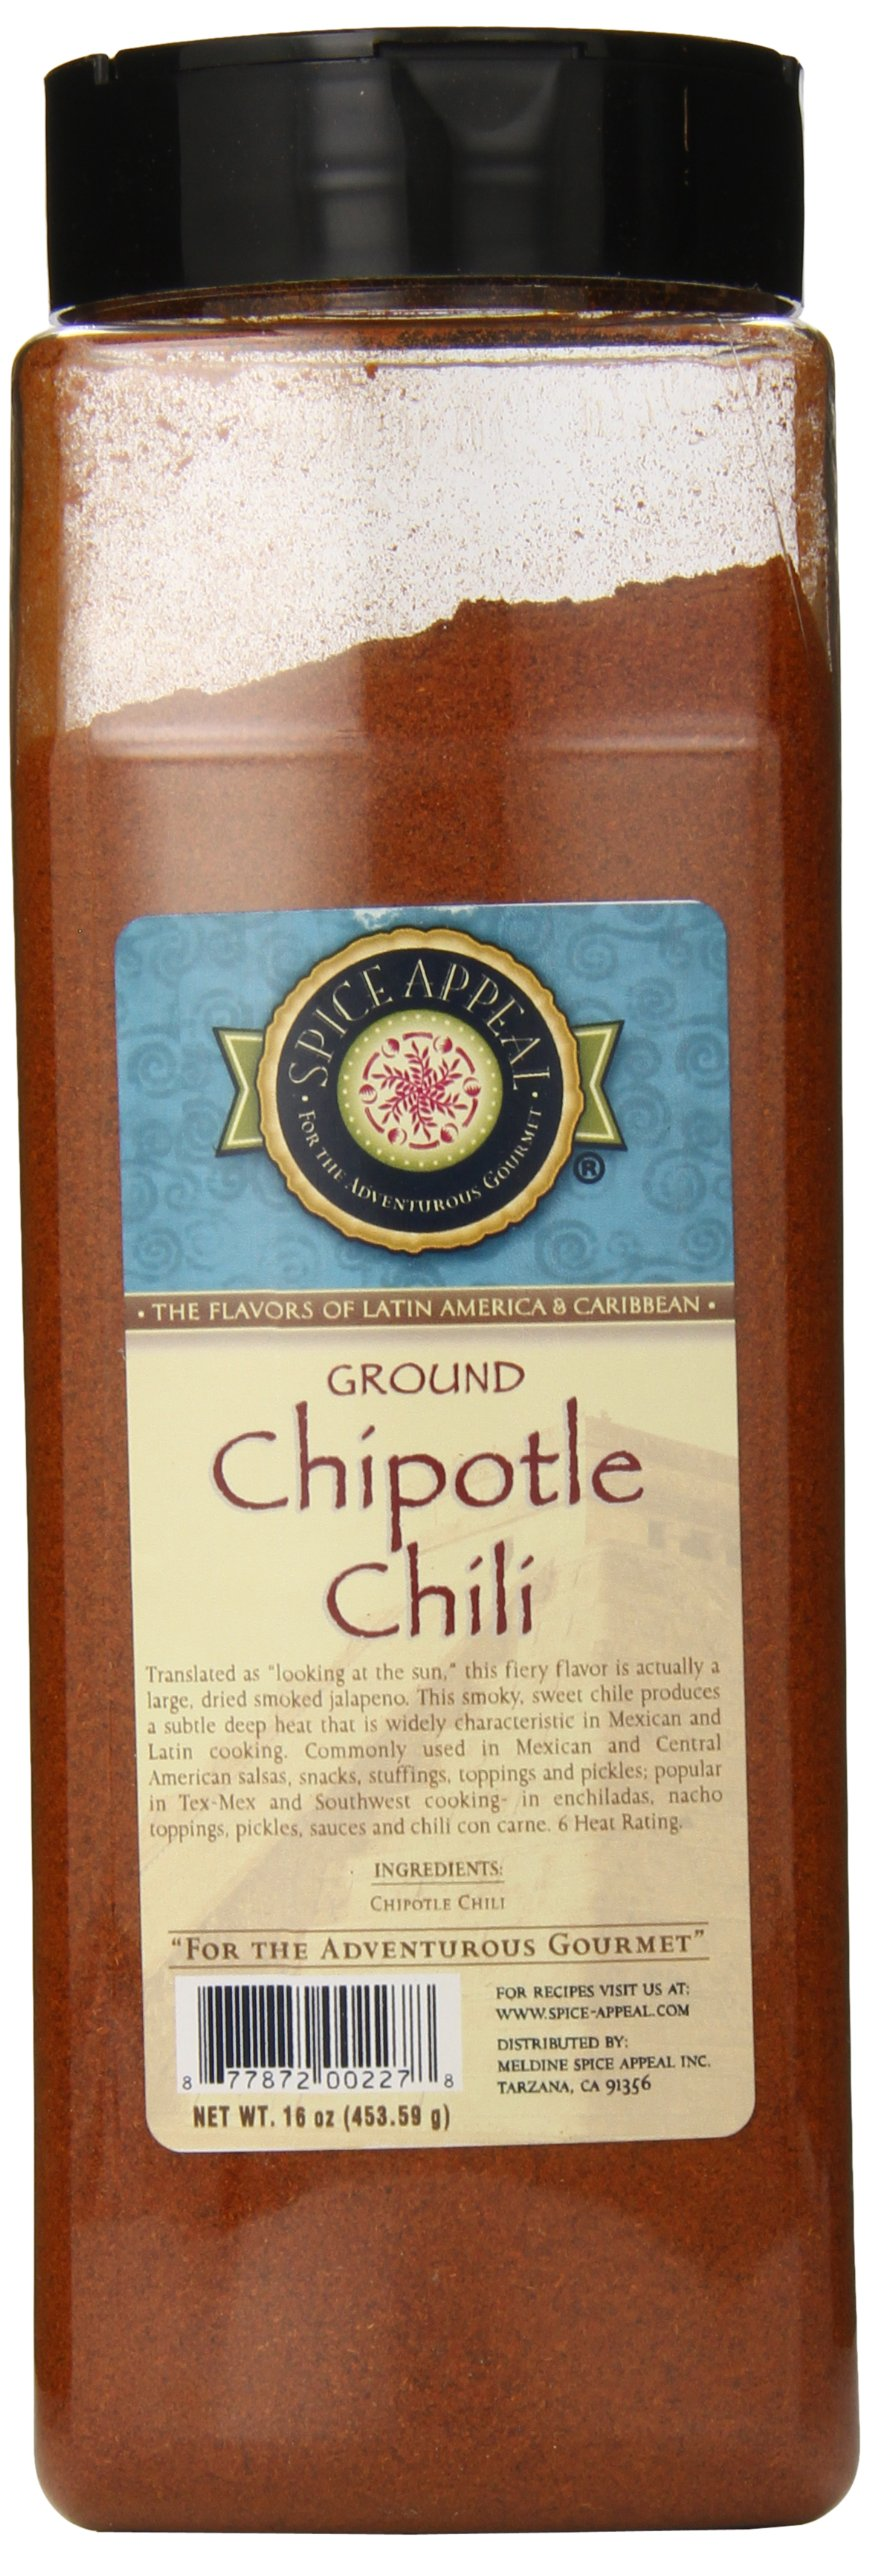 Spice Appeal Chipotle Chili Ground, 16 Ounce